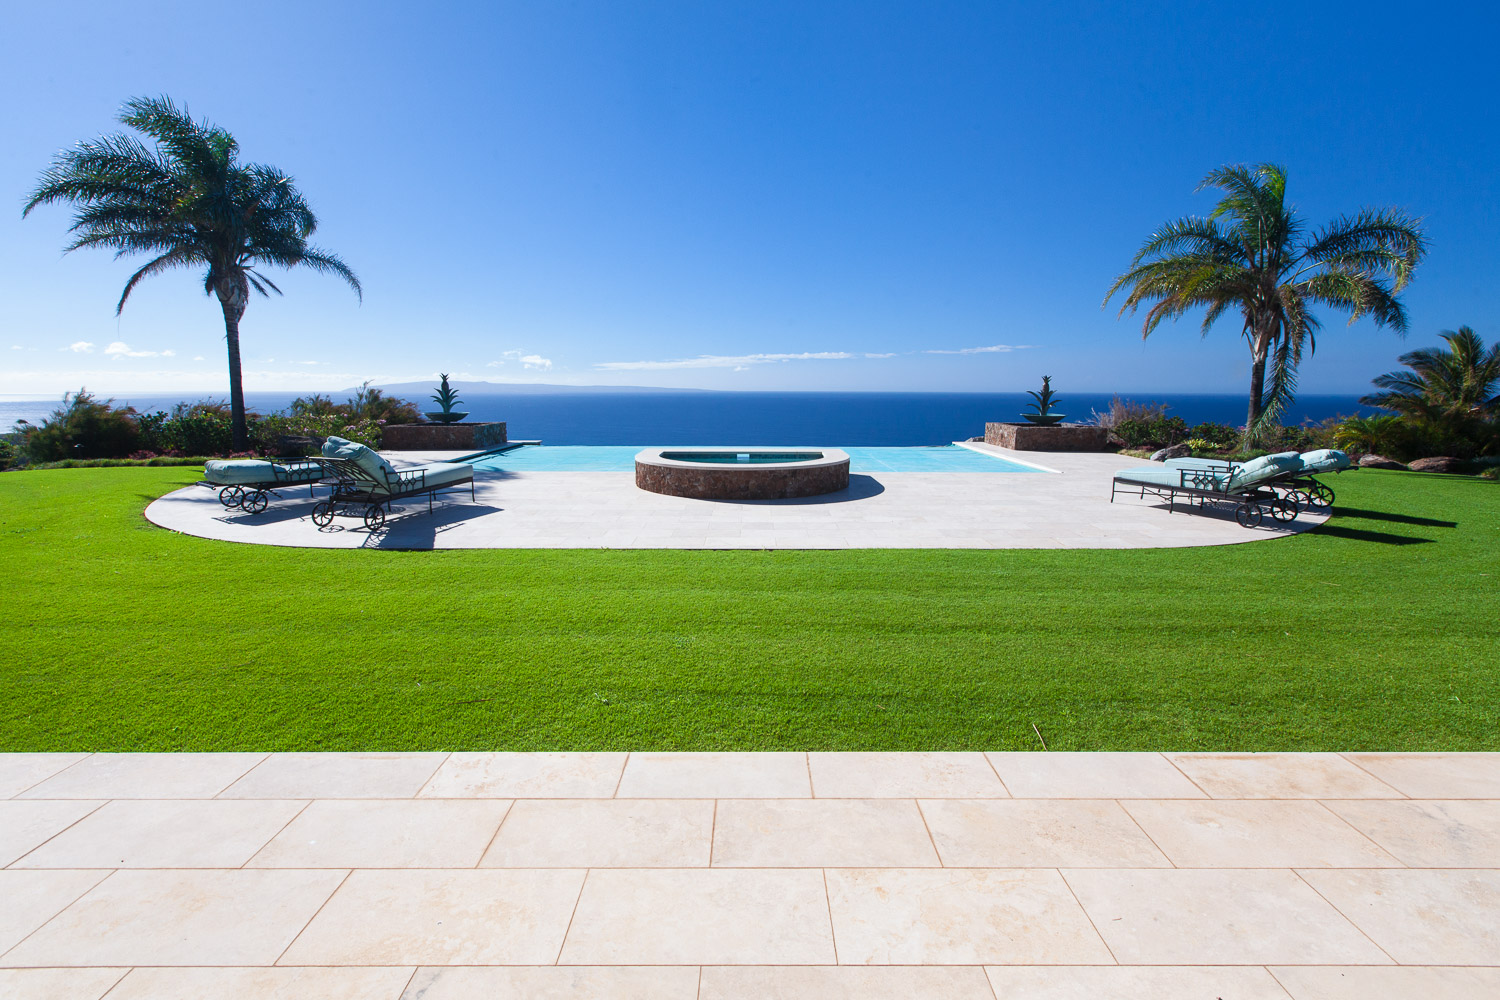 infinity-pool-chris-curtis-landscapes-pueo-creations-website.jpg